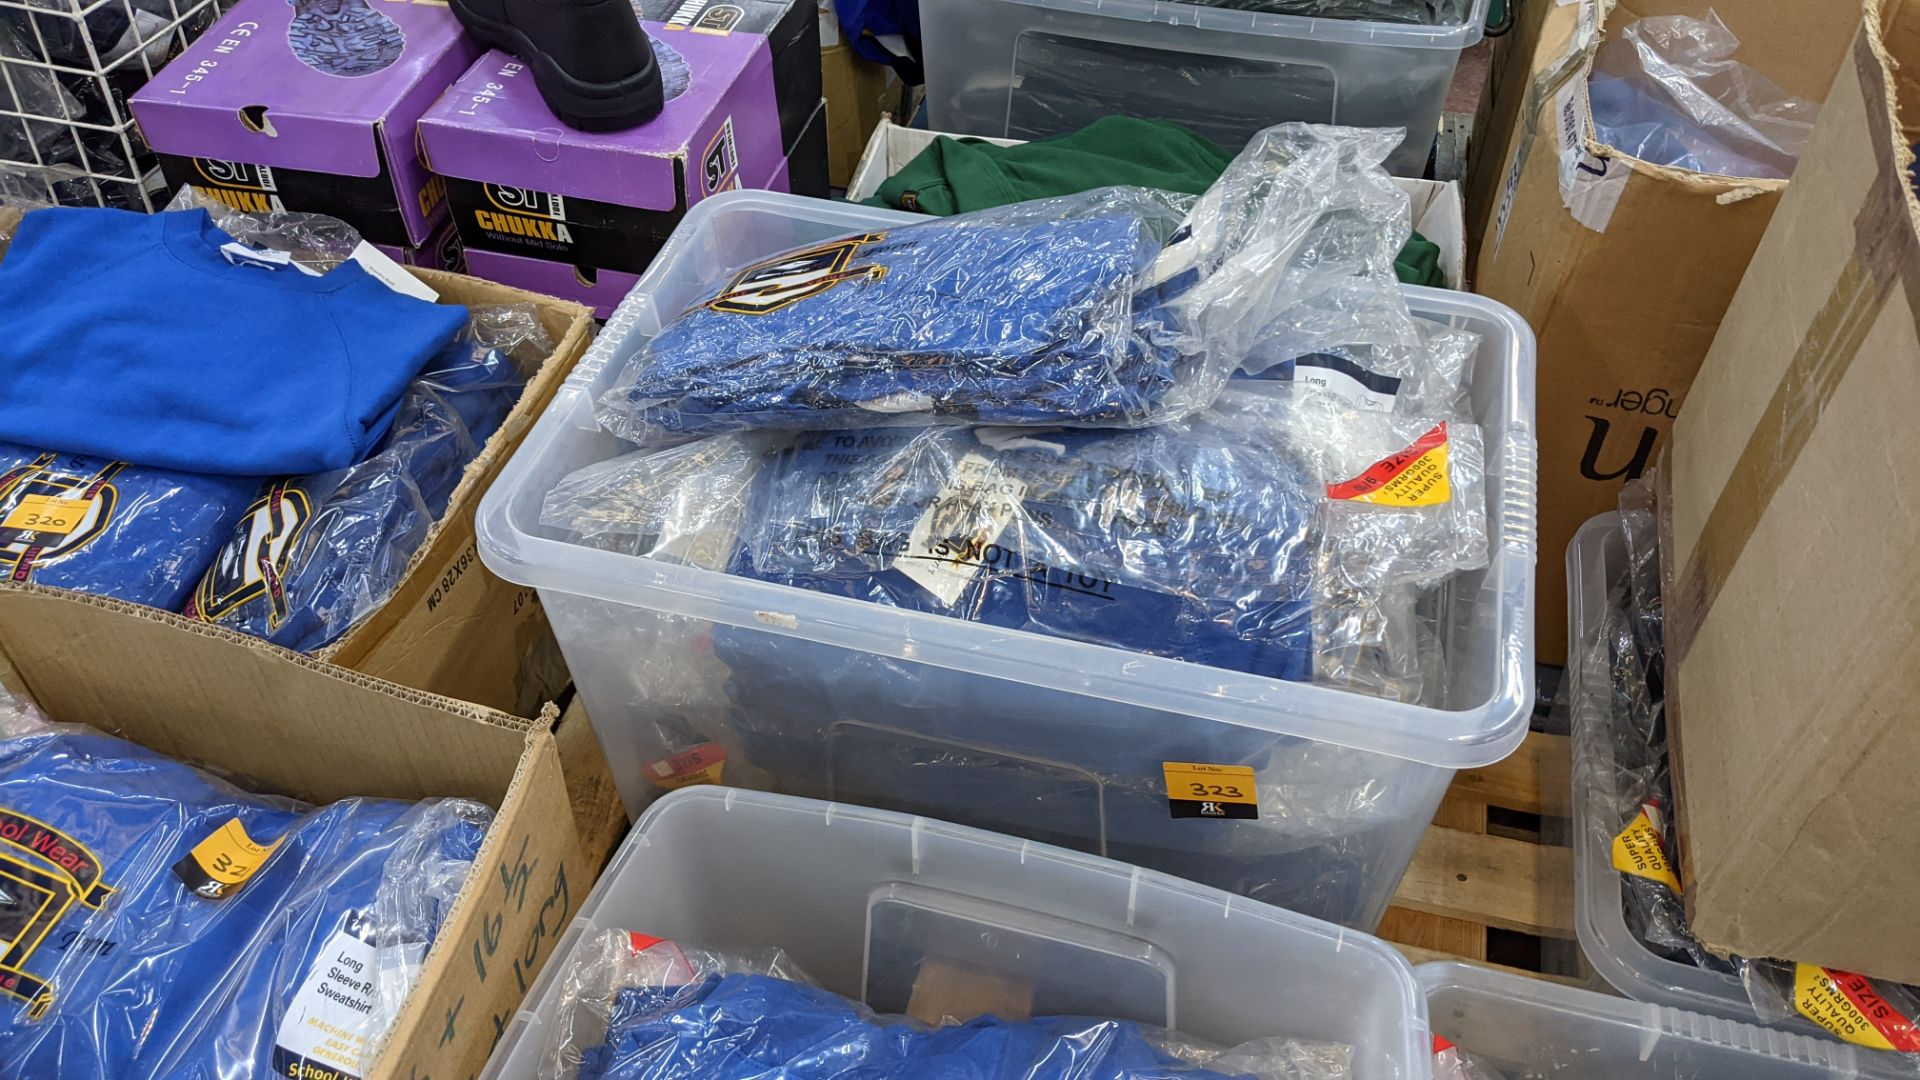 Approx 39 off blue children's sweatshirts & similar - the contents of 1 crate. NB crate excluded - Image 5 of 5